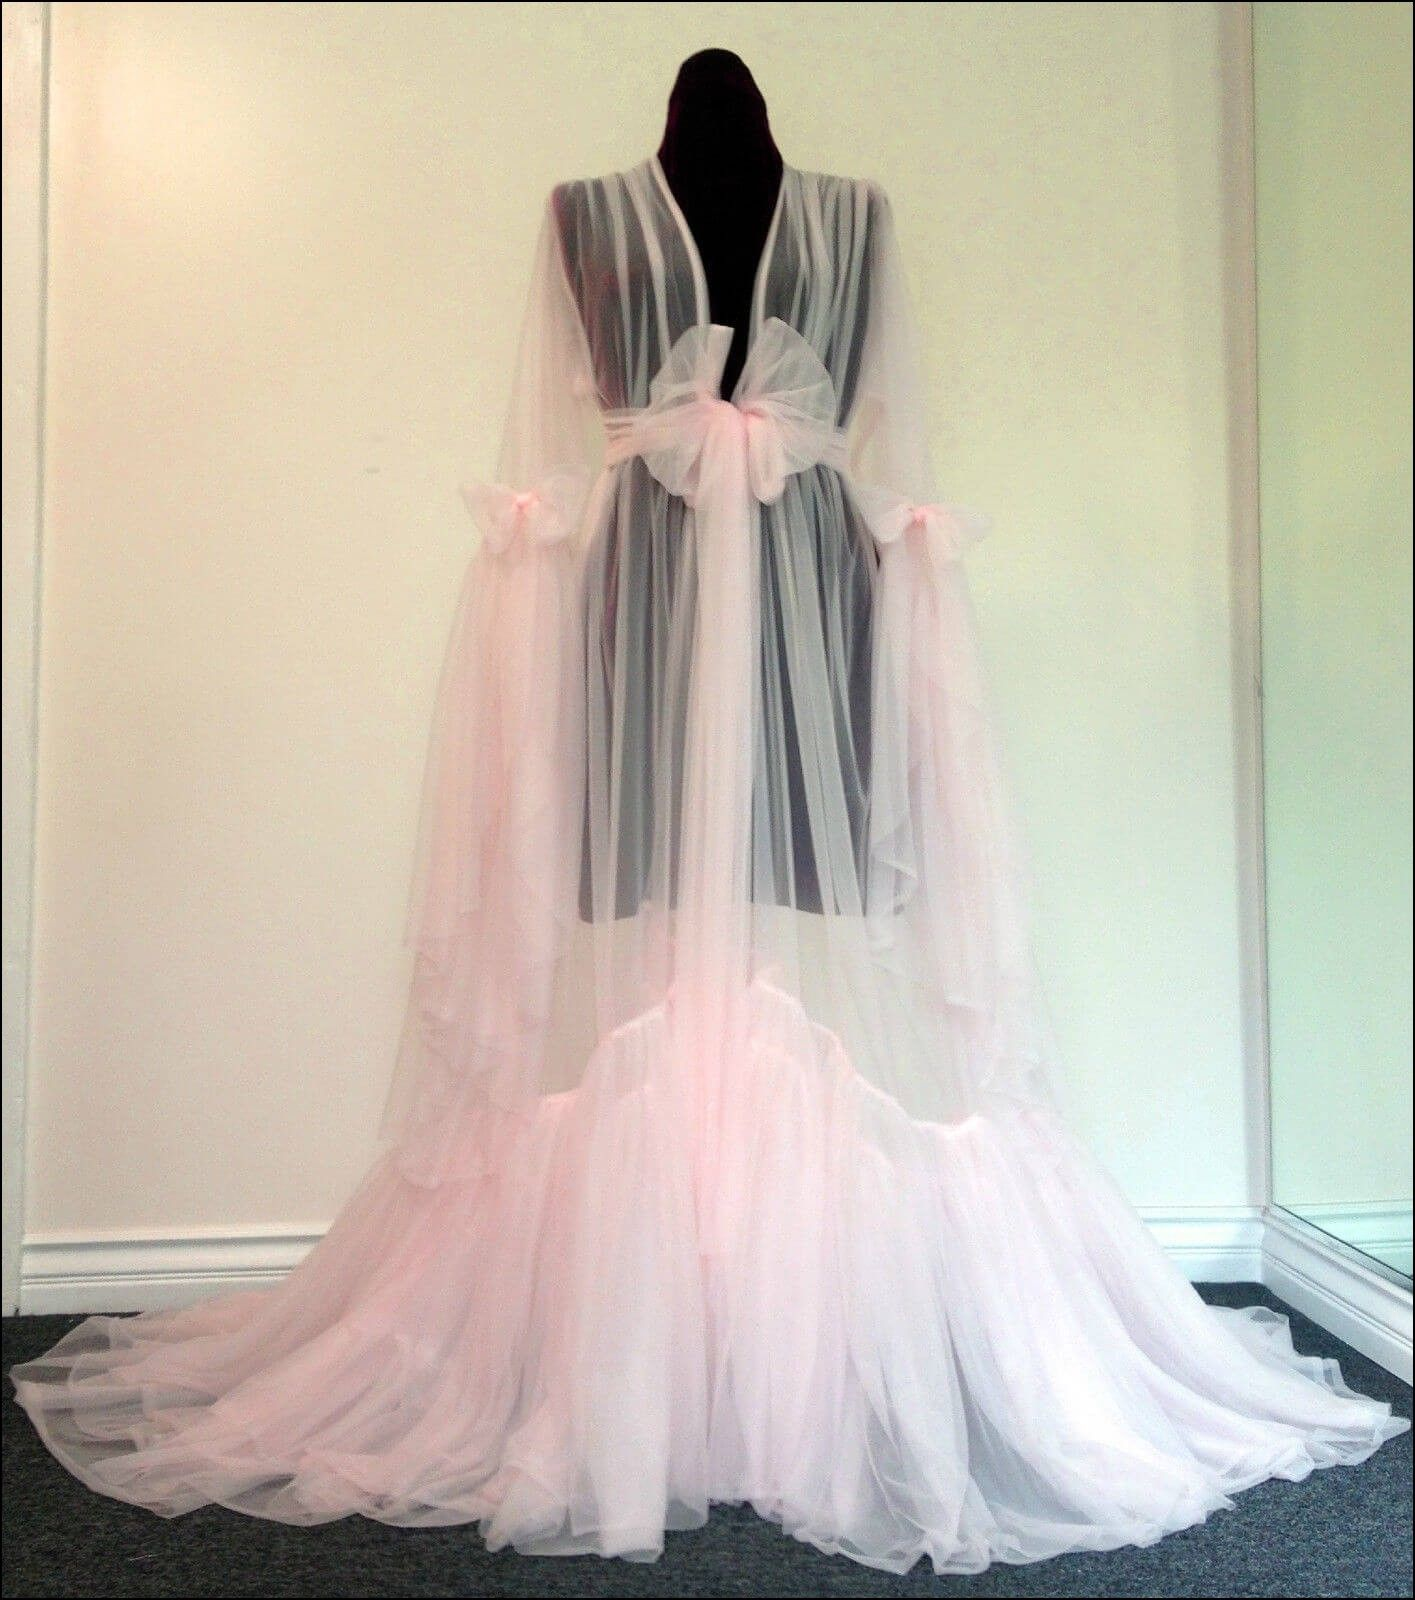 Old Fashioned Dressing Gowns | Dresses and Gowns Ideas | Pinterest ...